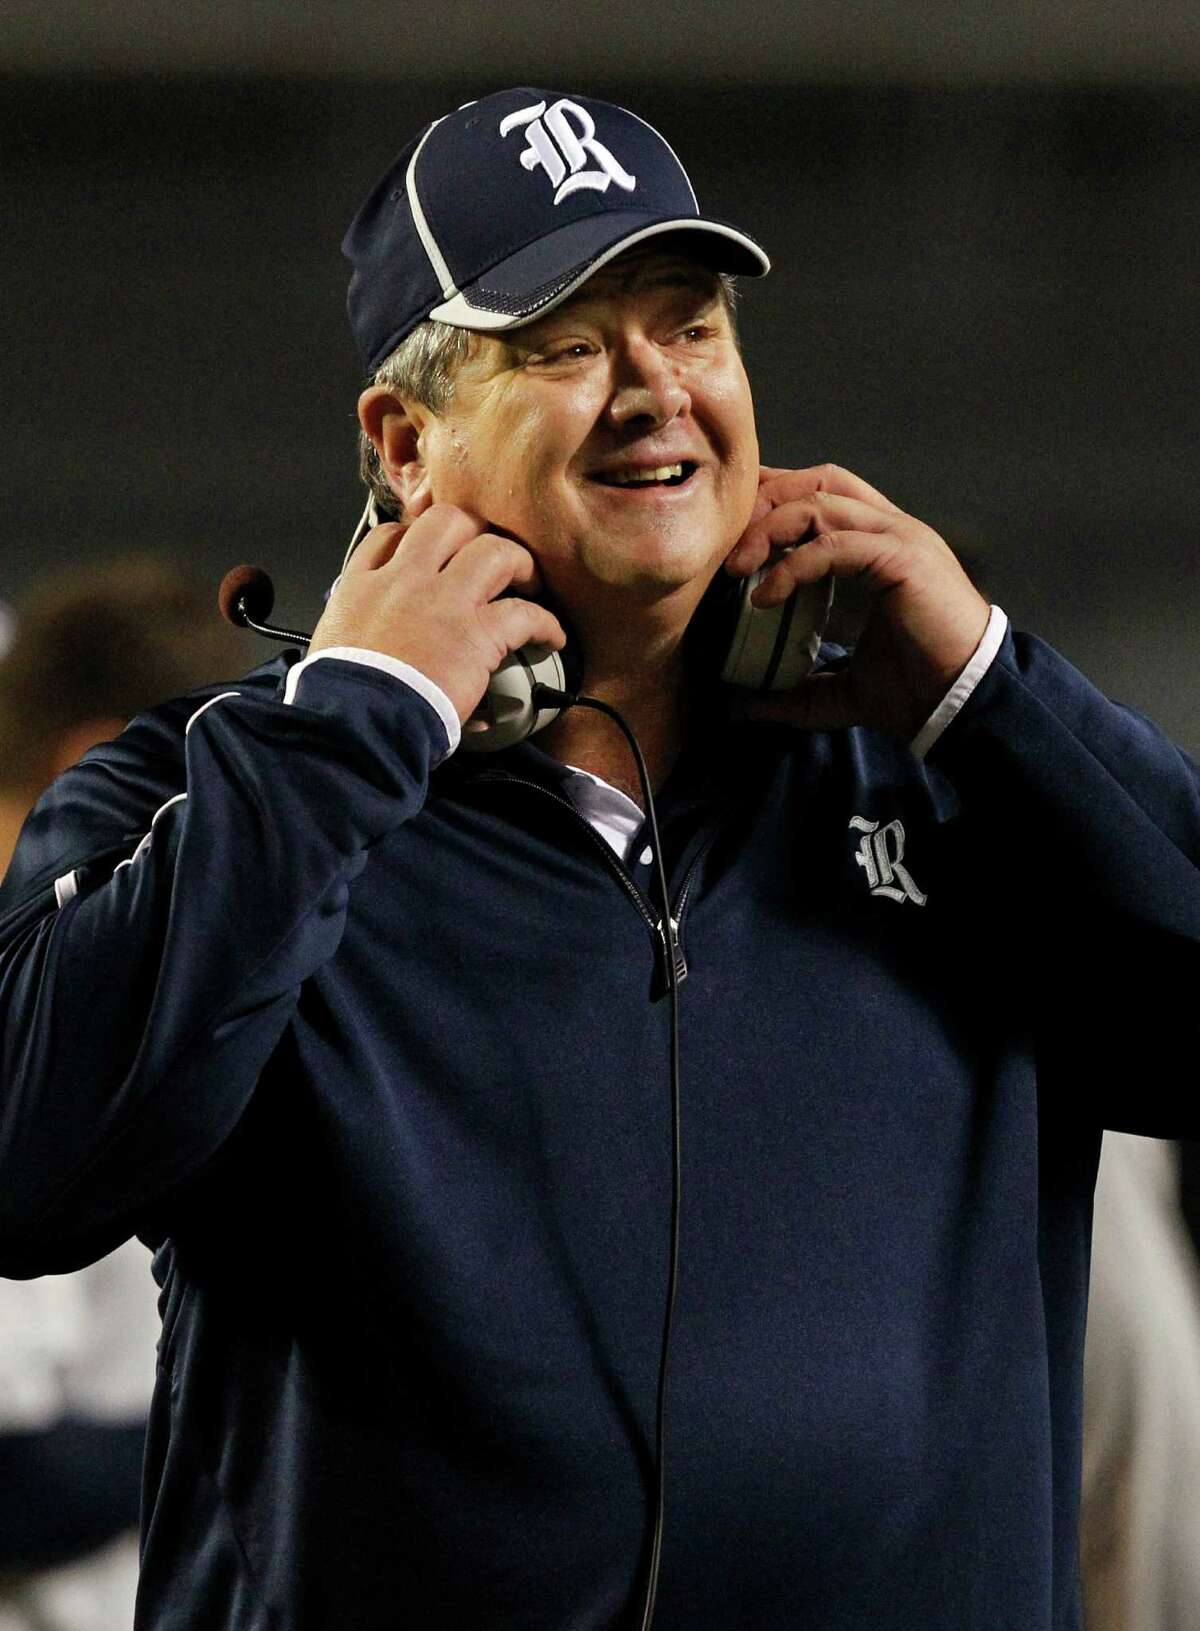 Rice head coach David Bailiff reacts to a play during the first half of an NCAA college football game against UAB on Thursday, Nov. 21, 2013, in Birmingham, Ala. (AP Photo/Butch Dill)